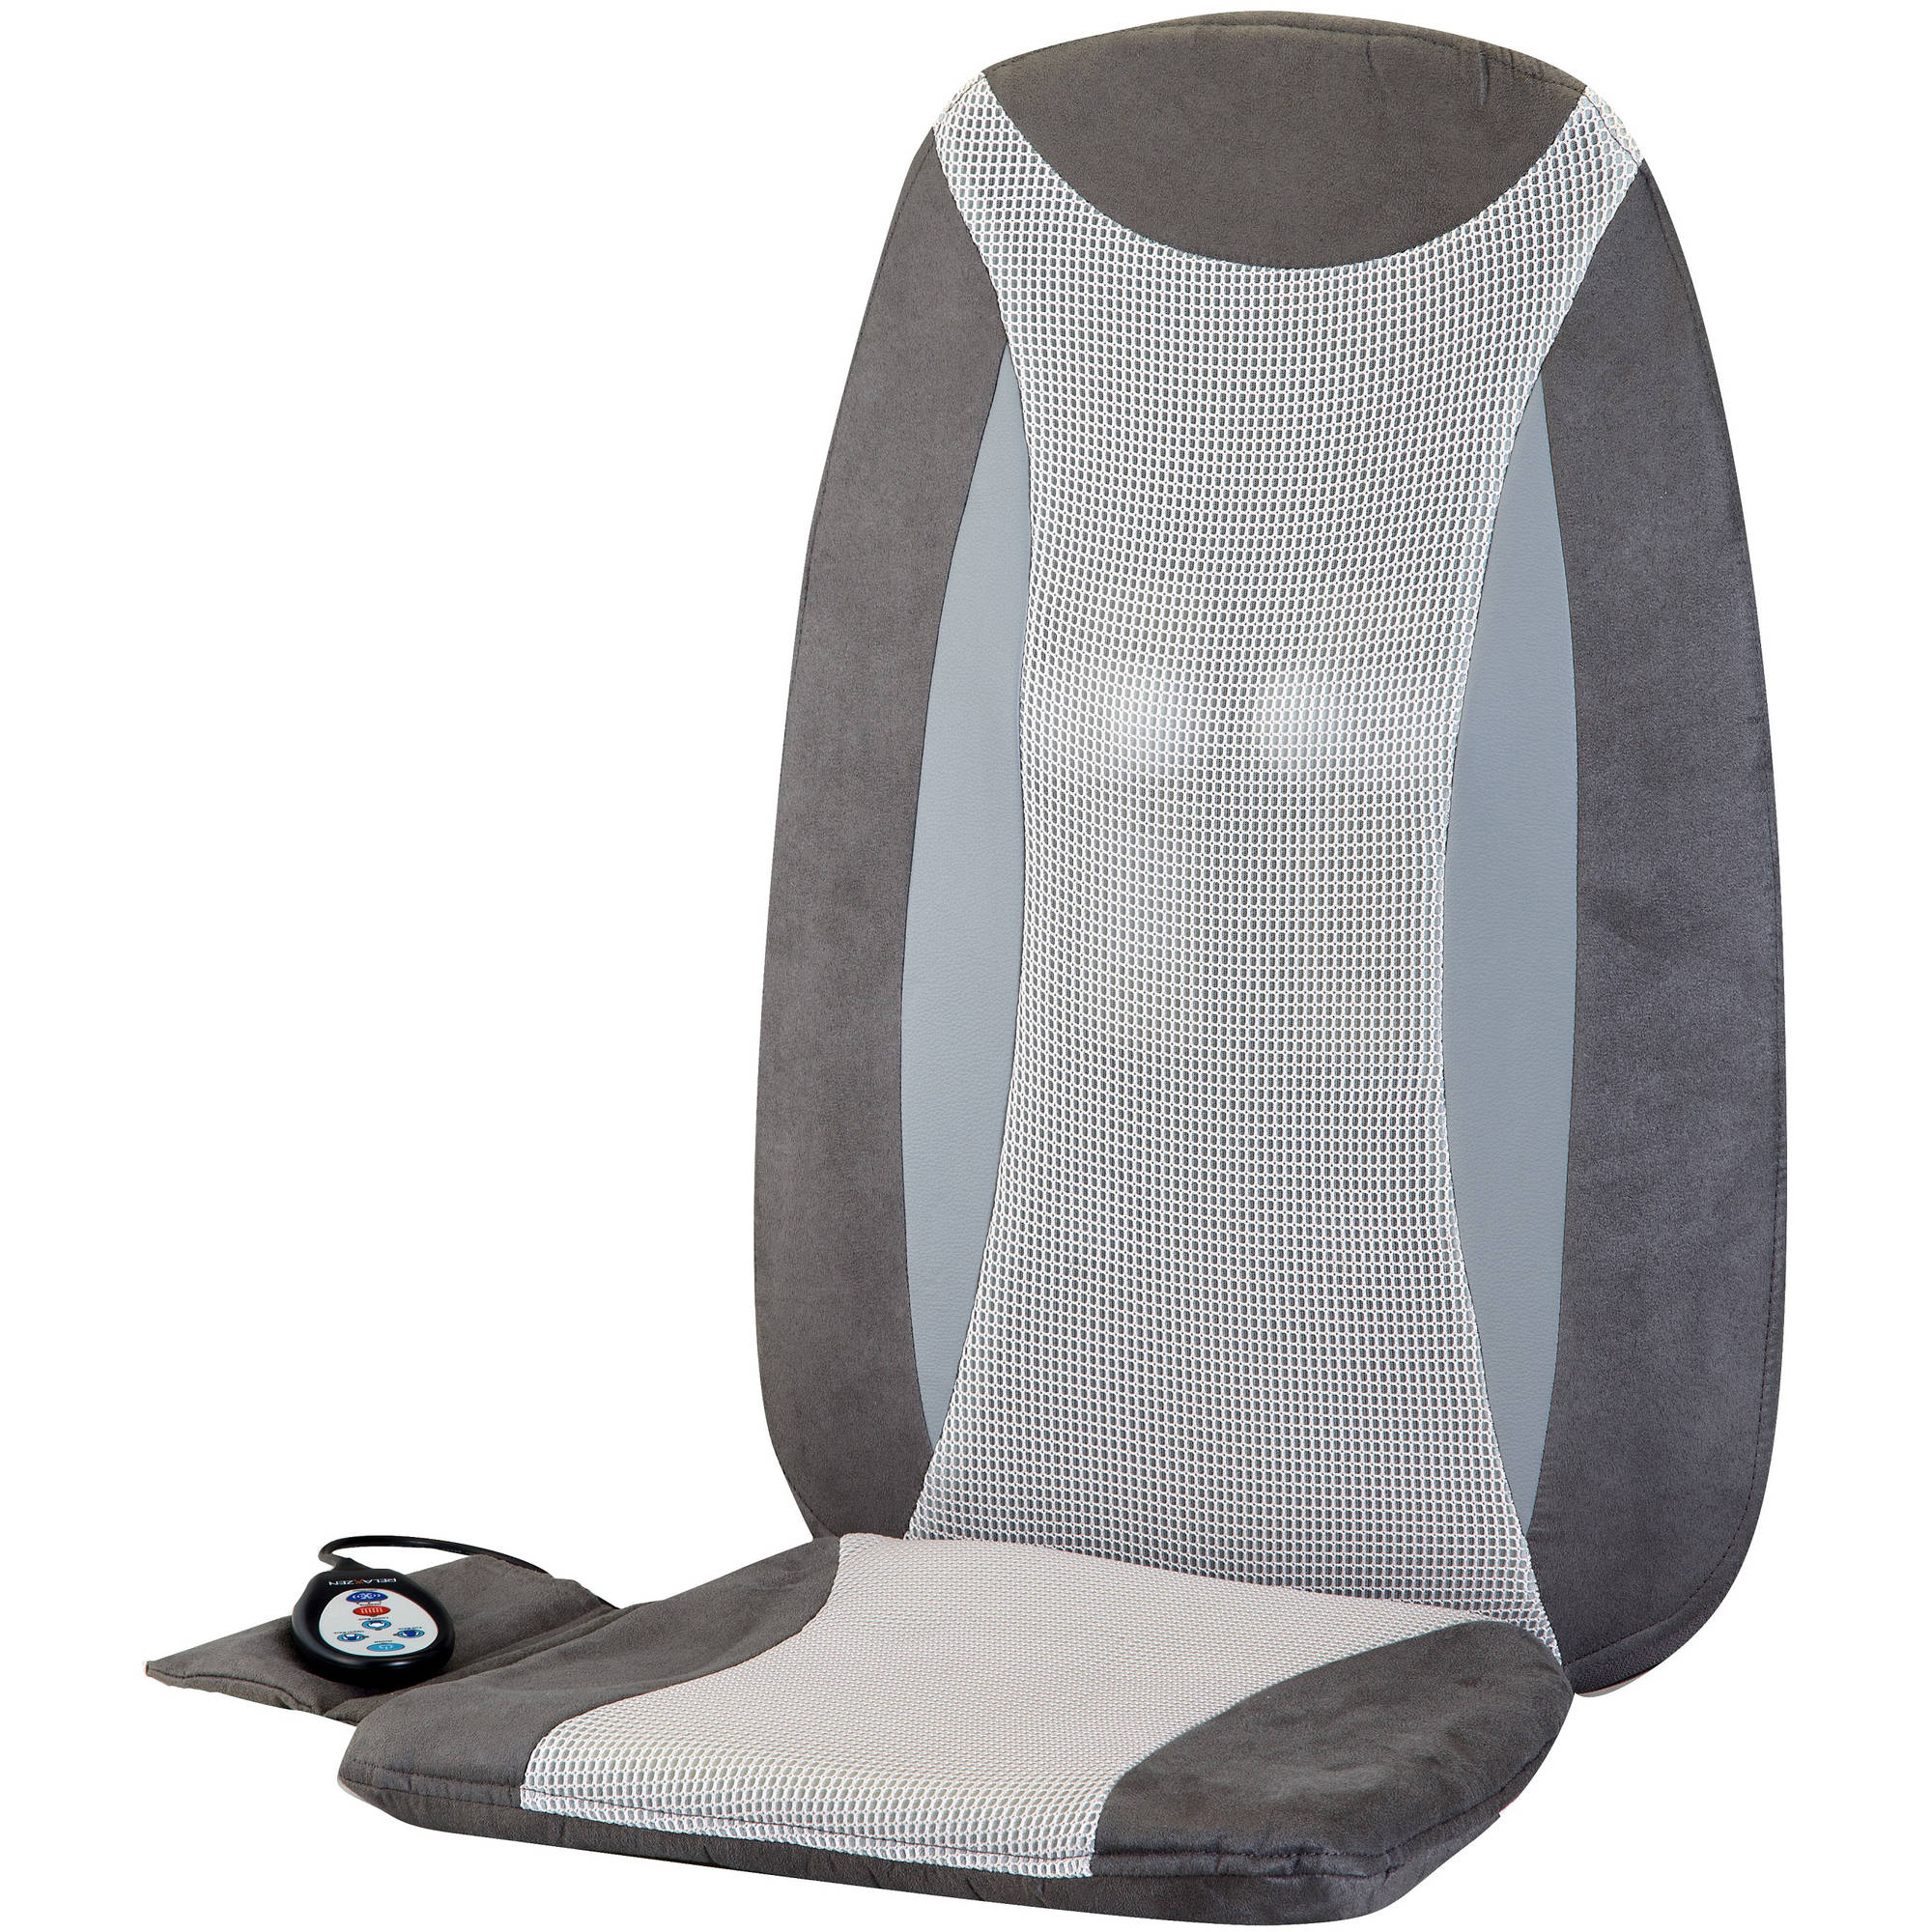 Relaxzen Full Back Shiatsu Massage Cushion